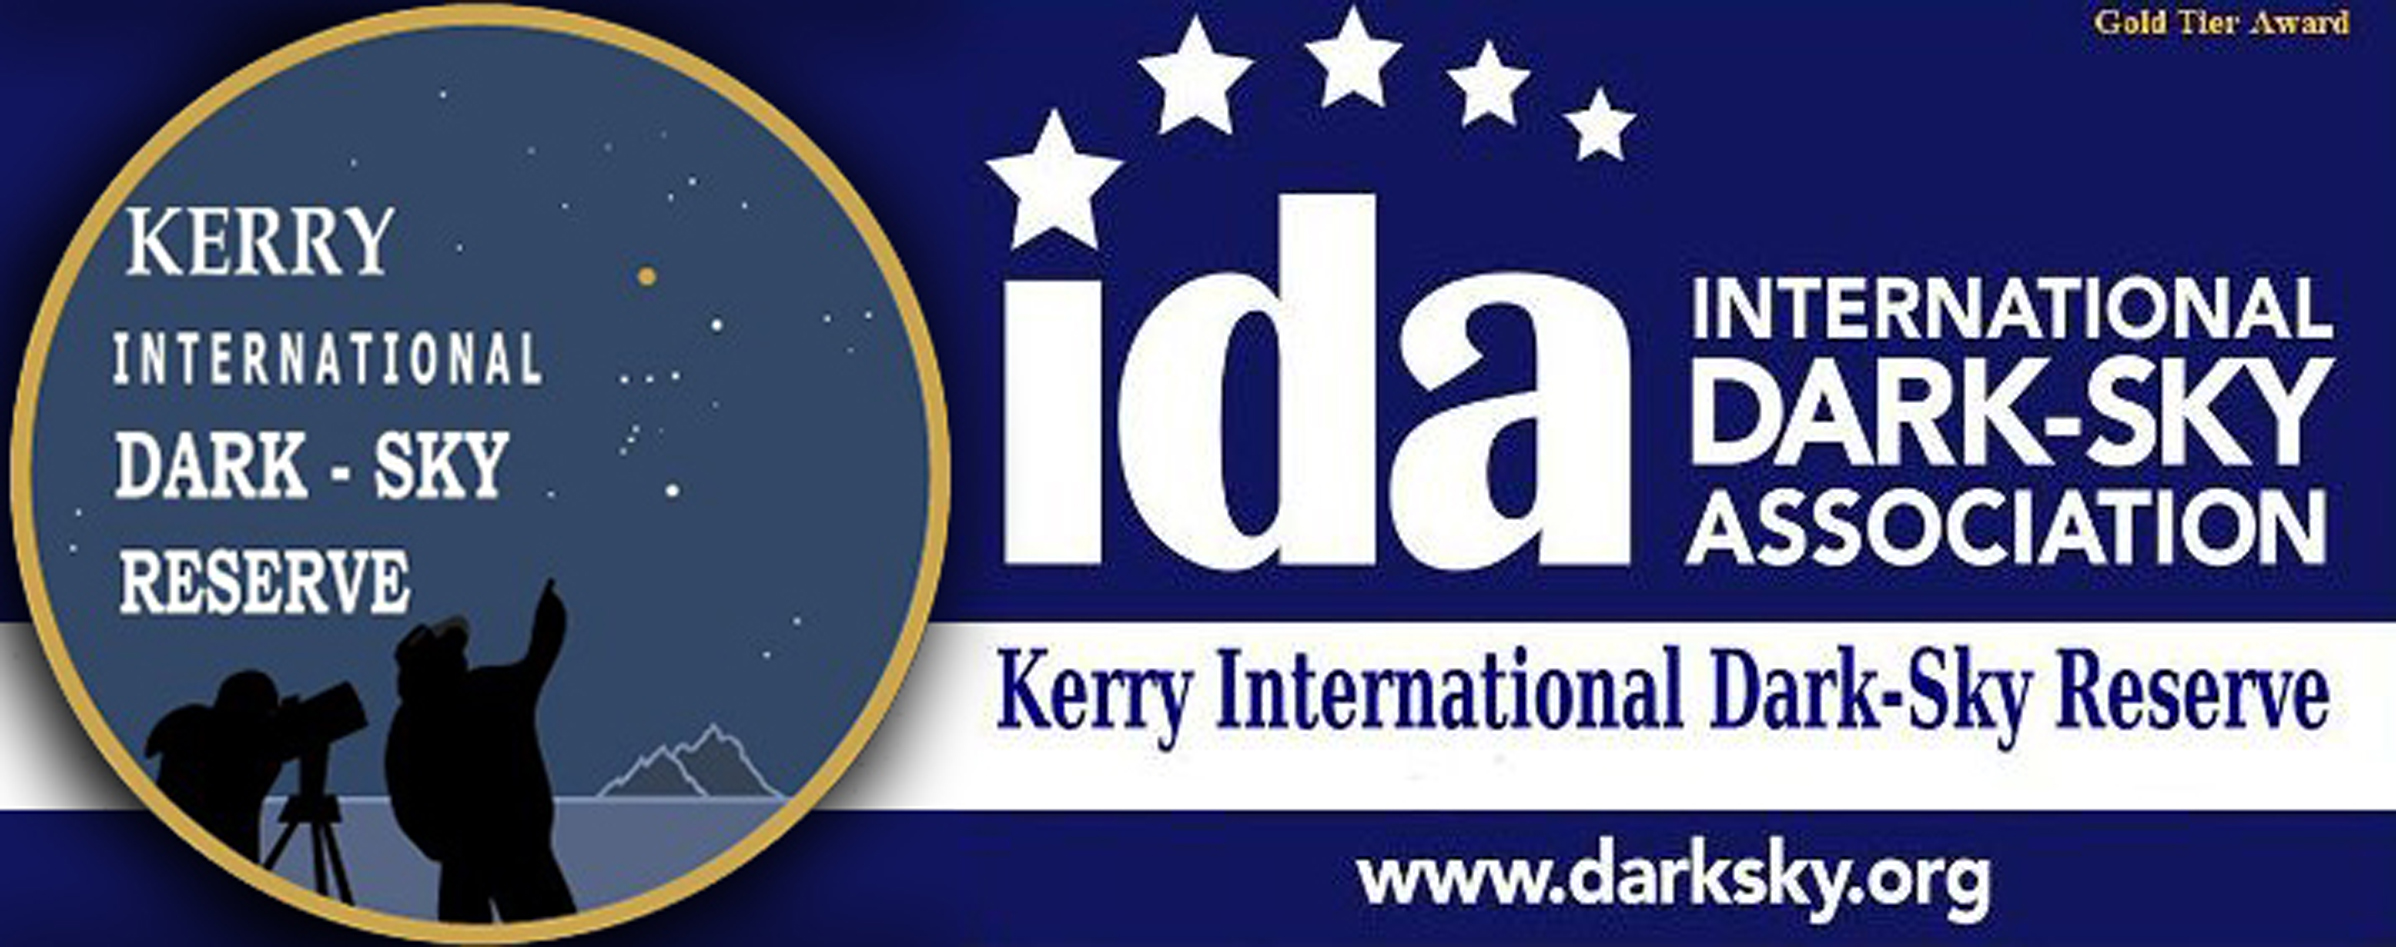 Kerry InternationalDark Sky Reserve - We want you have an enjoyable rewarding experience so we arrange our star gazing experiences at easy accessible locations within the reserve. We can also arrange pick up at your location by our local transport partners at reasonable cost.Click here to read more…